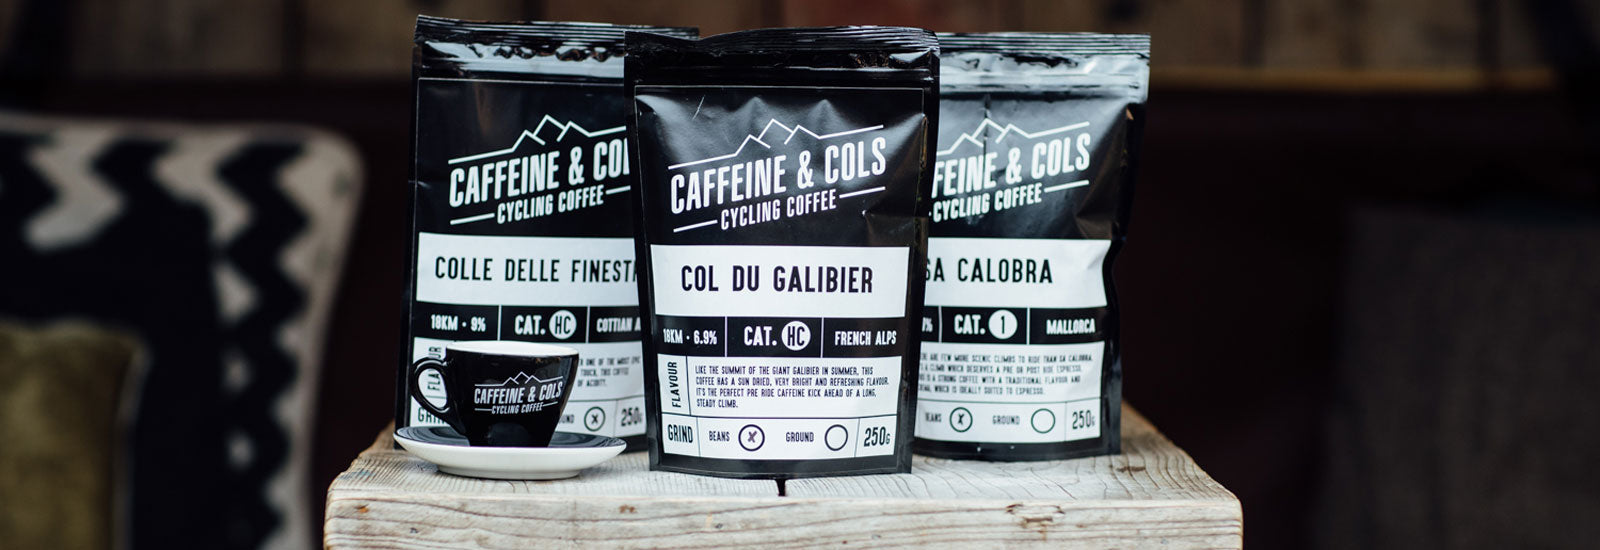 Caffeine & Cols Cycling Coffee